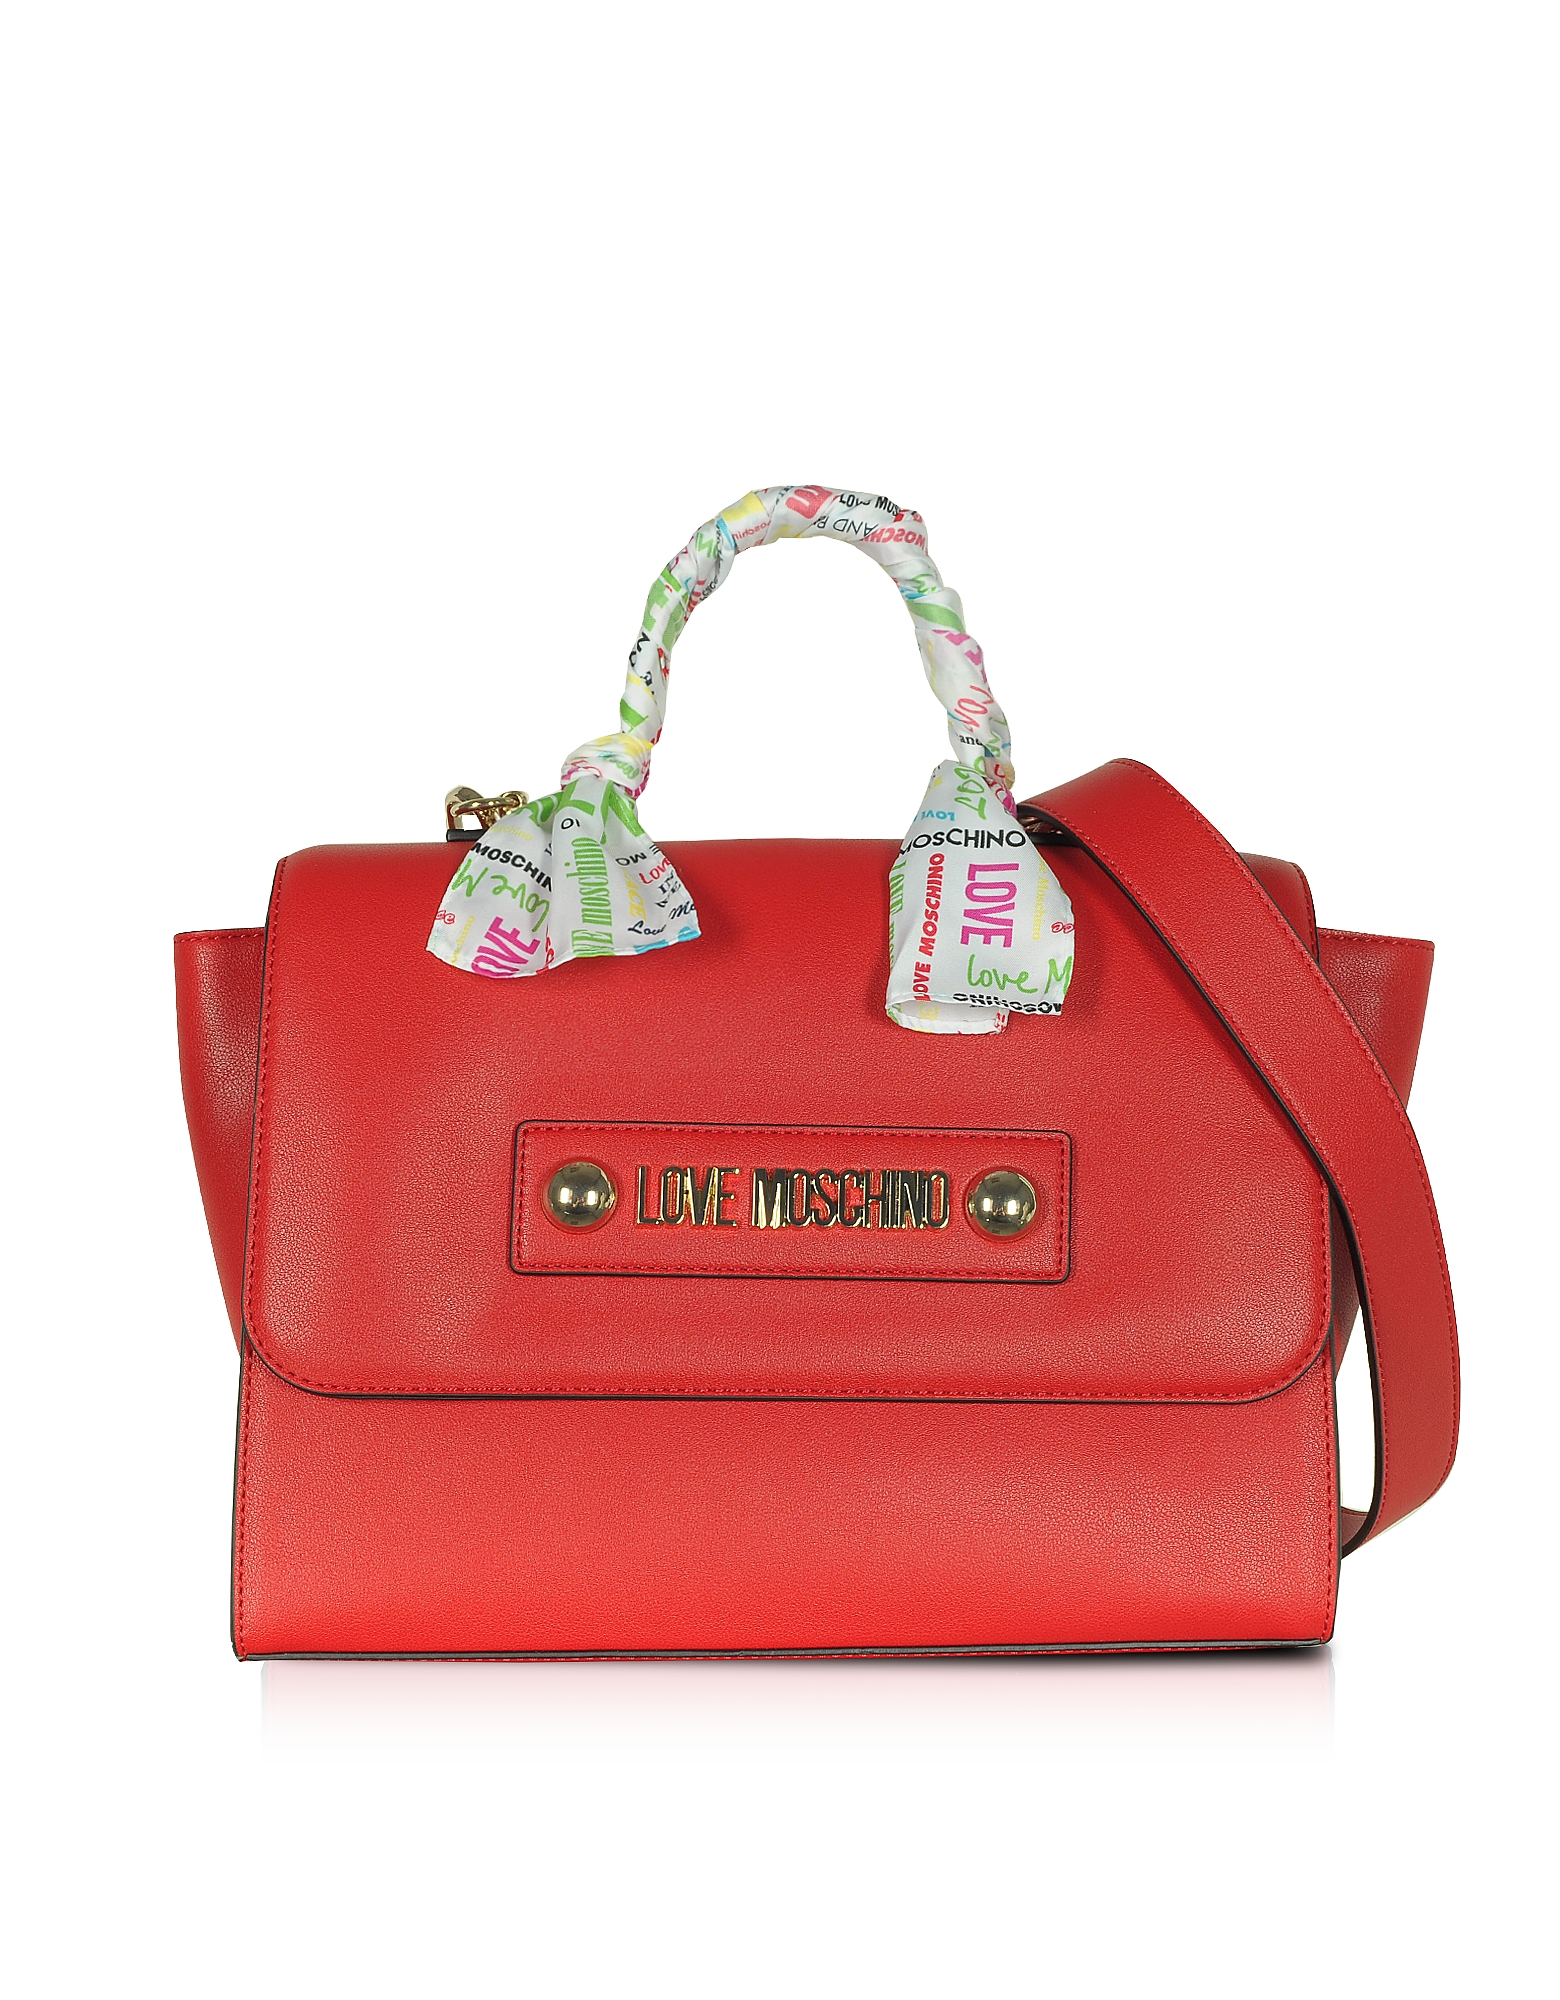 Love Moschino Designer Handbags, Red Eco-Leather Satchel w/Signature Scarf